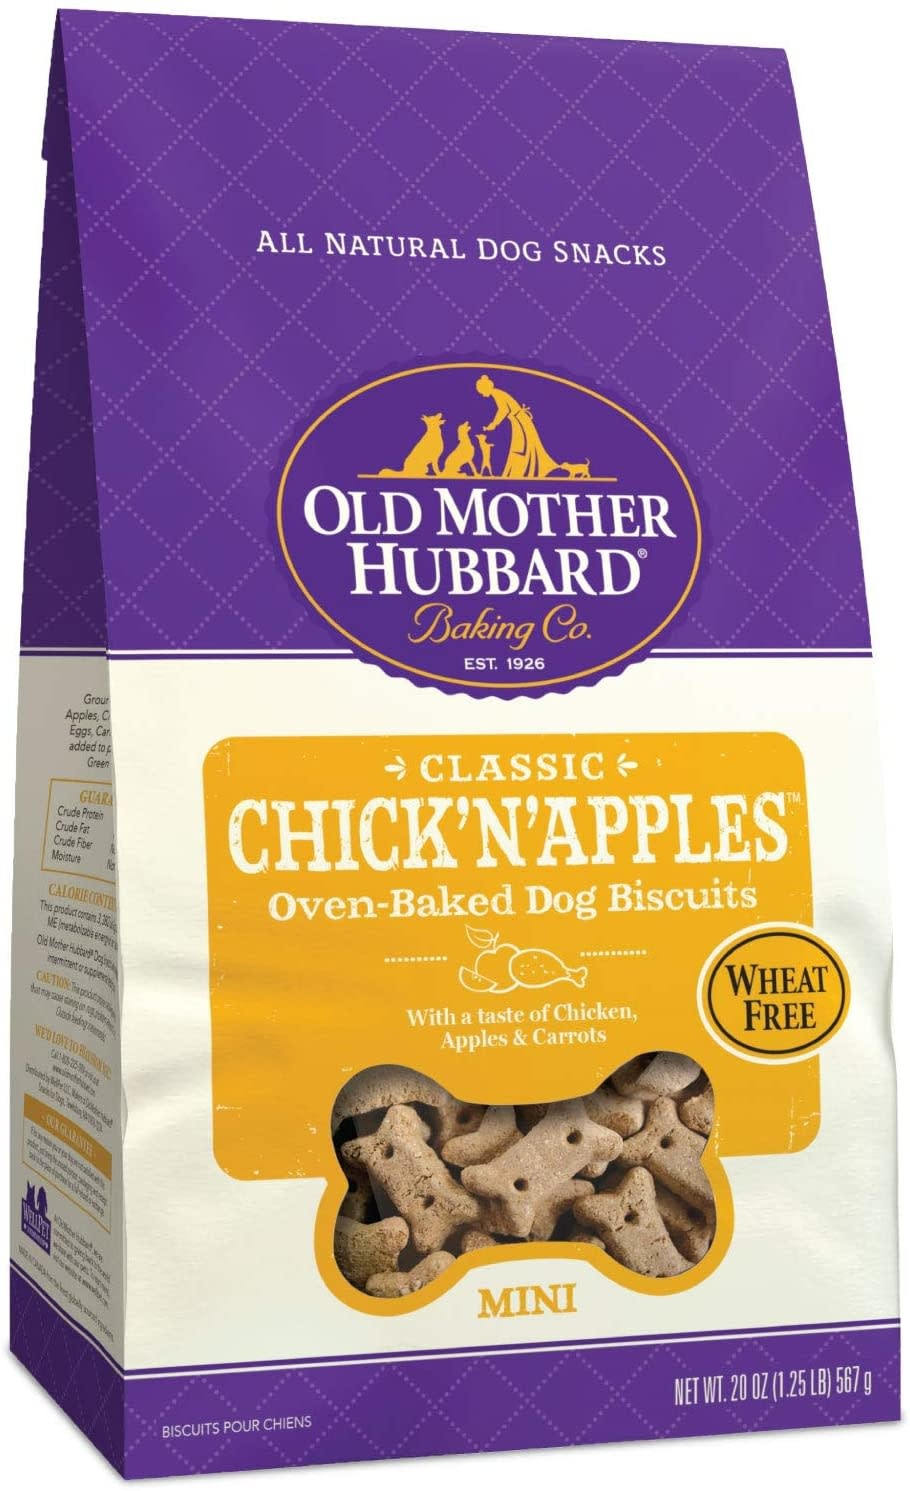 WellPet Old Mother Hubbard Chick'n'Apples Mini Biscuits 20oz